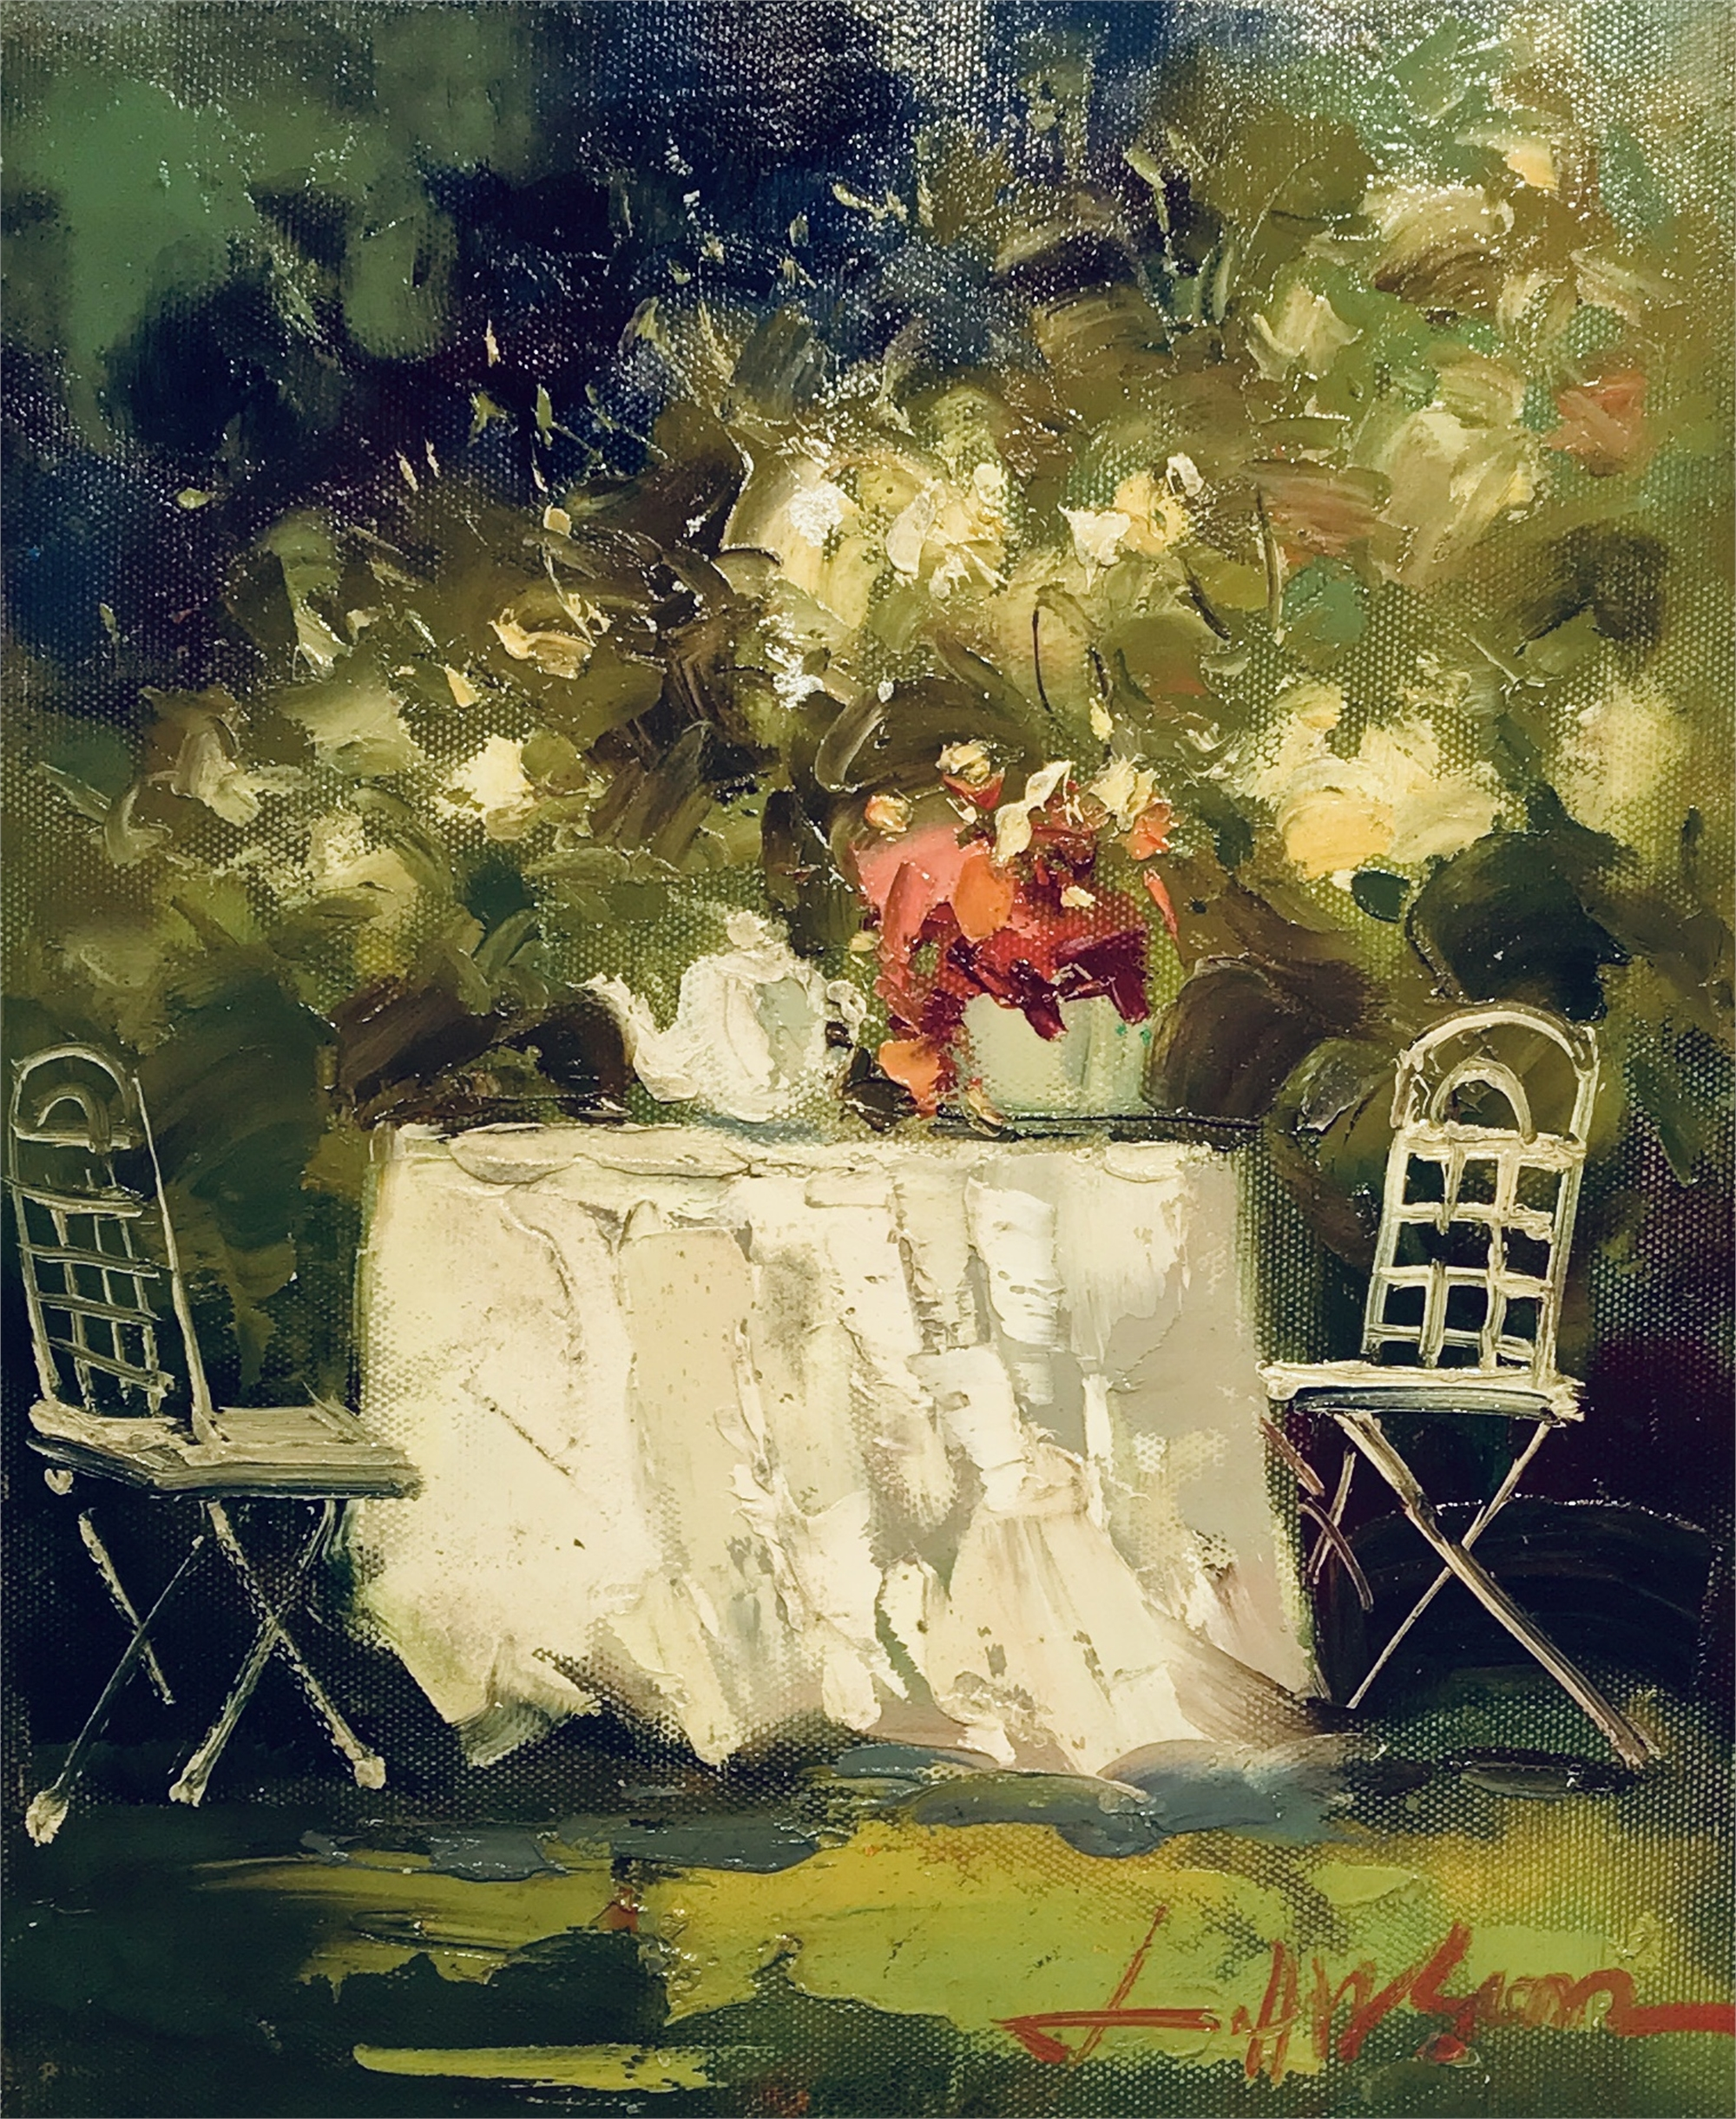 TEA IN THE GARDEN by VARIOUS WORKS